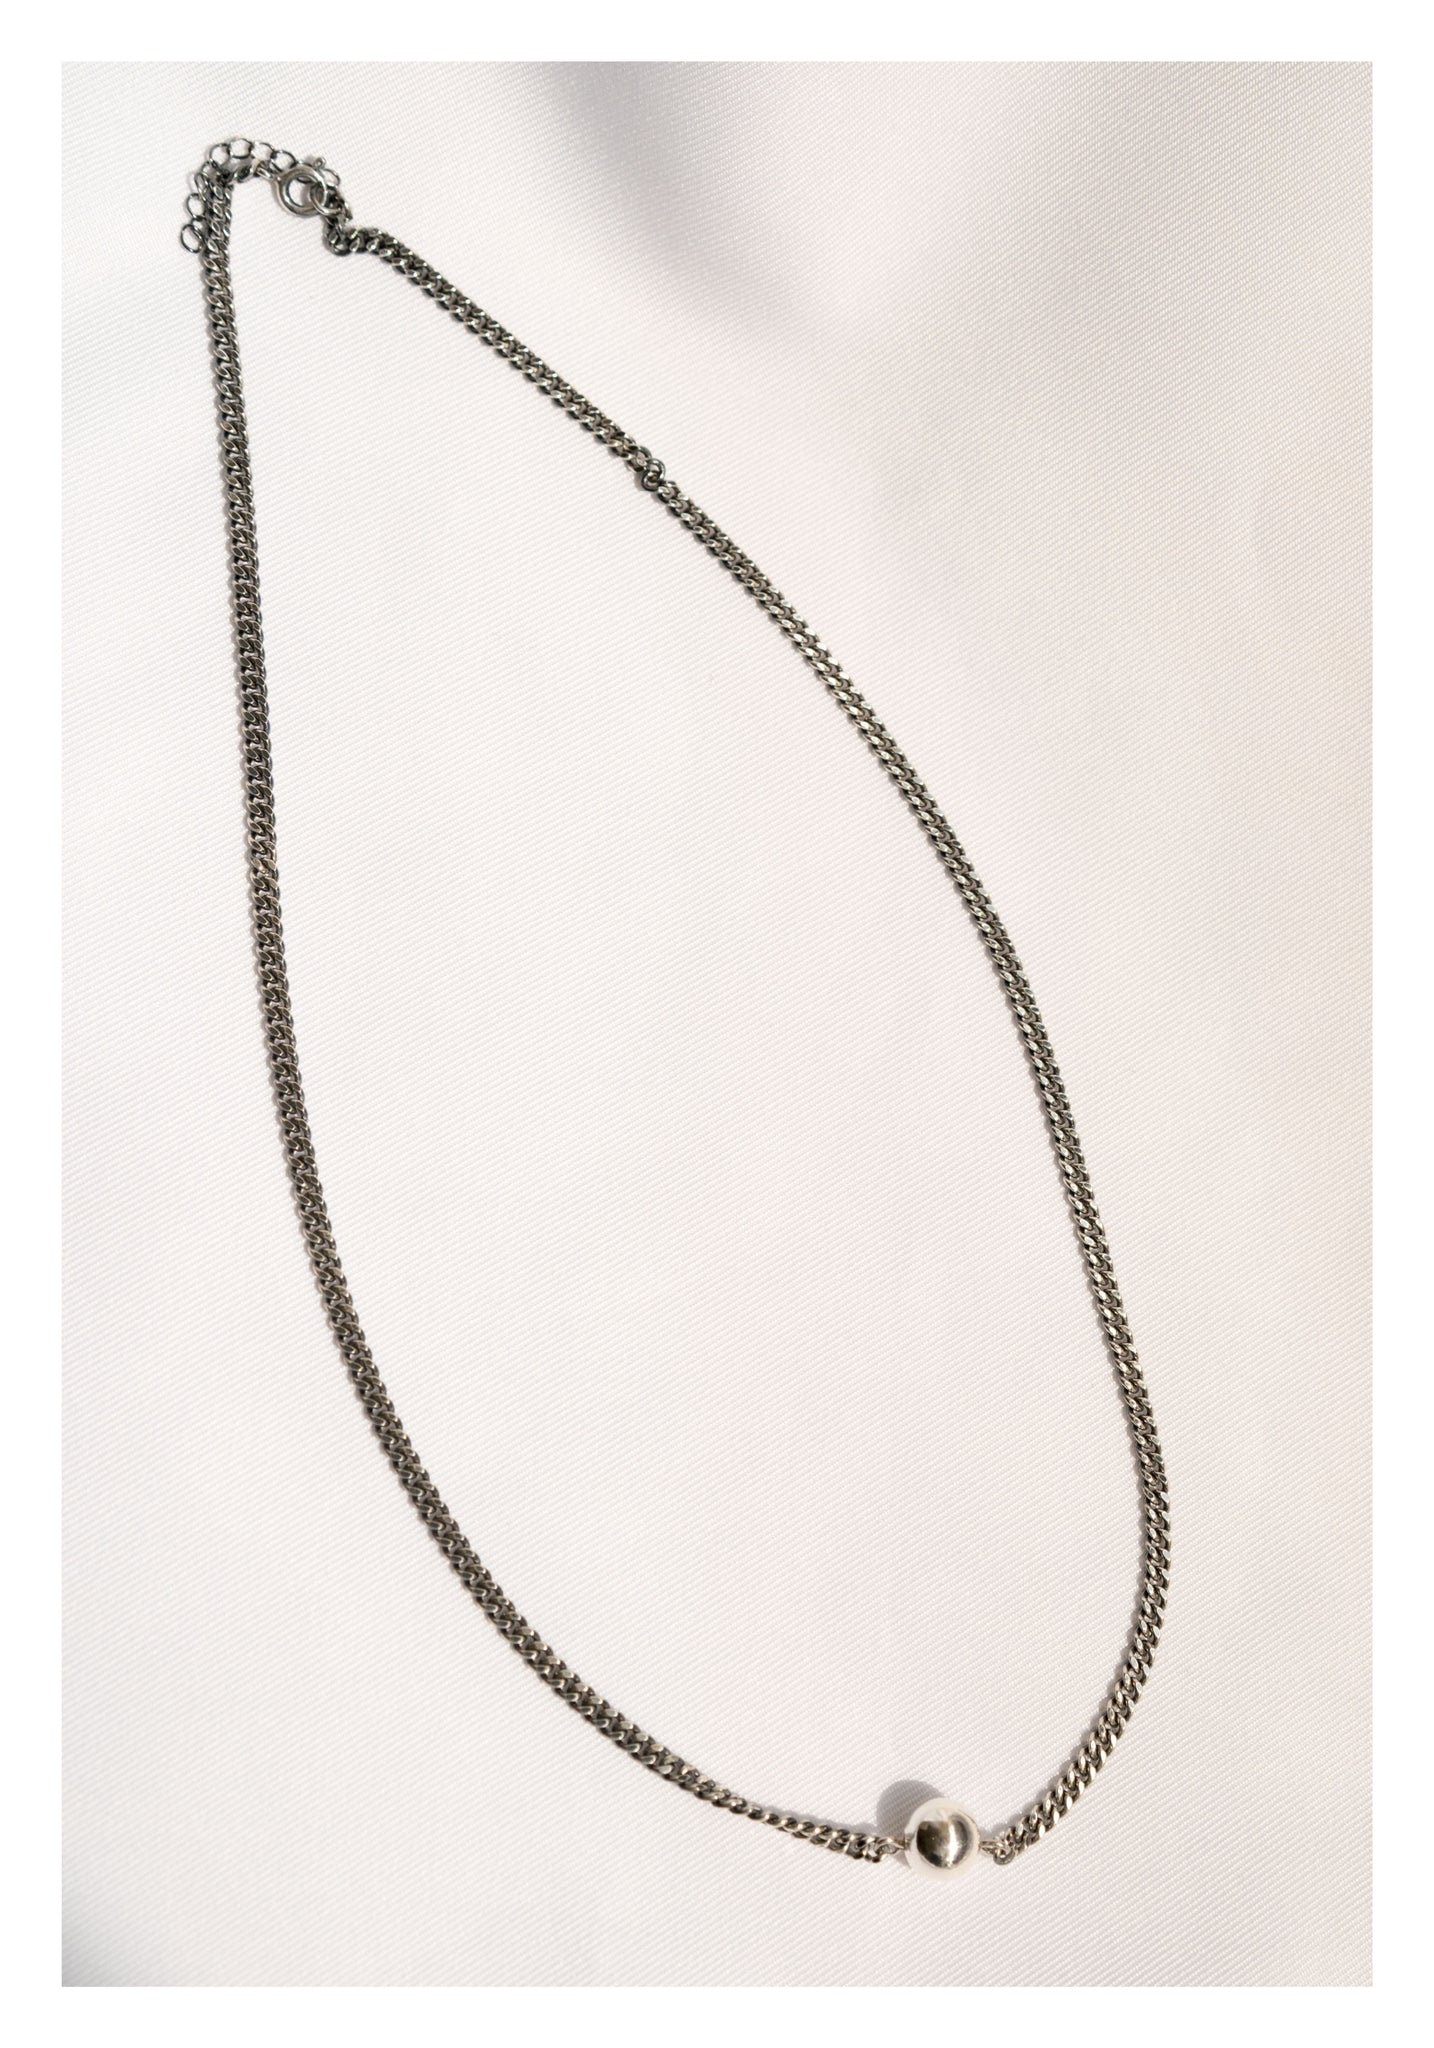 925 Silver Single Medium Beads Necklace - whoami